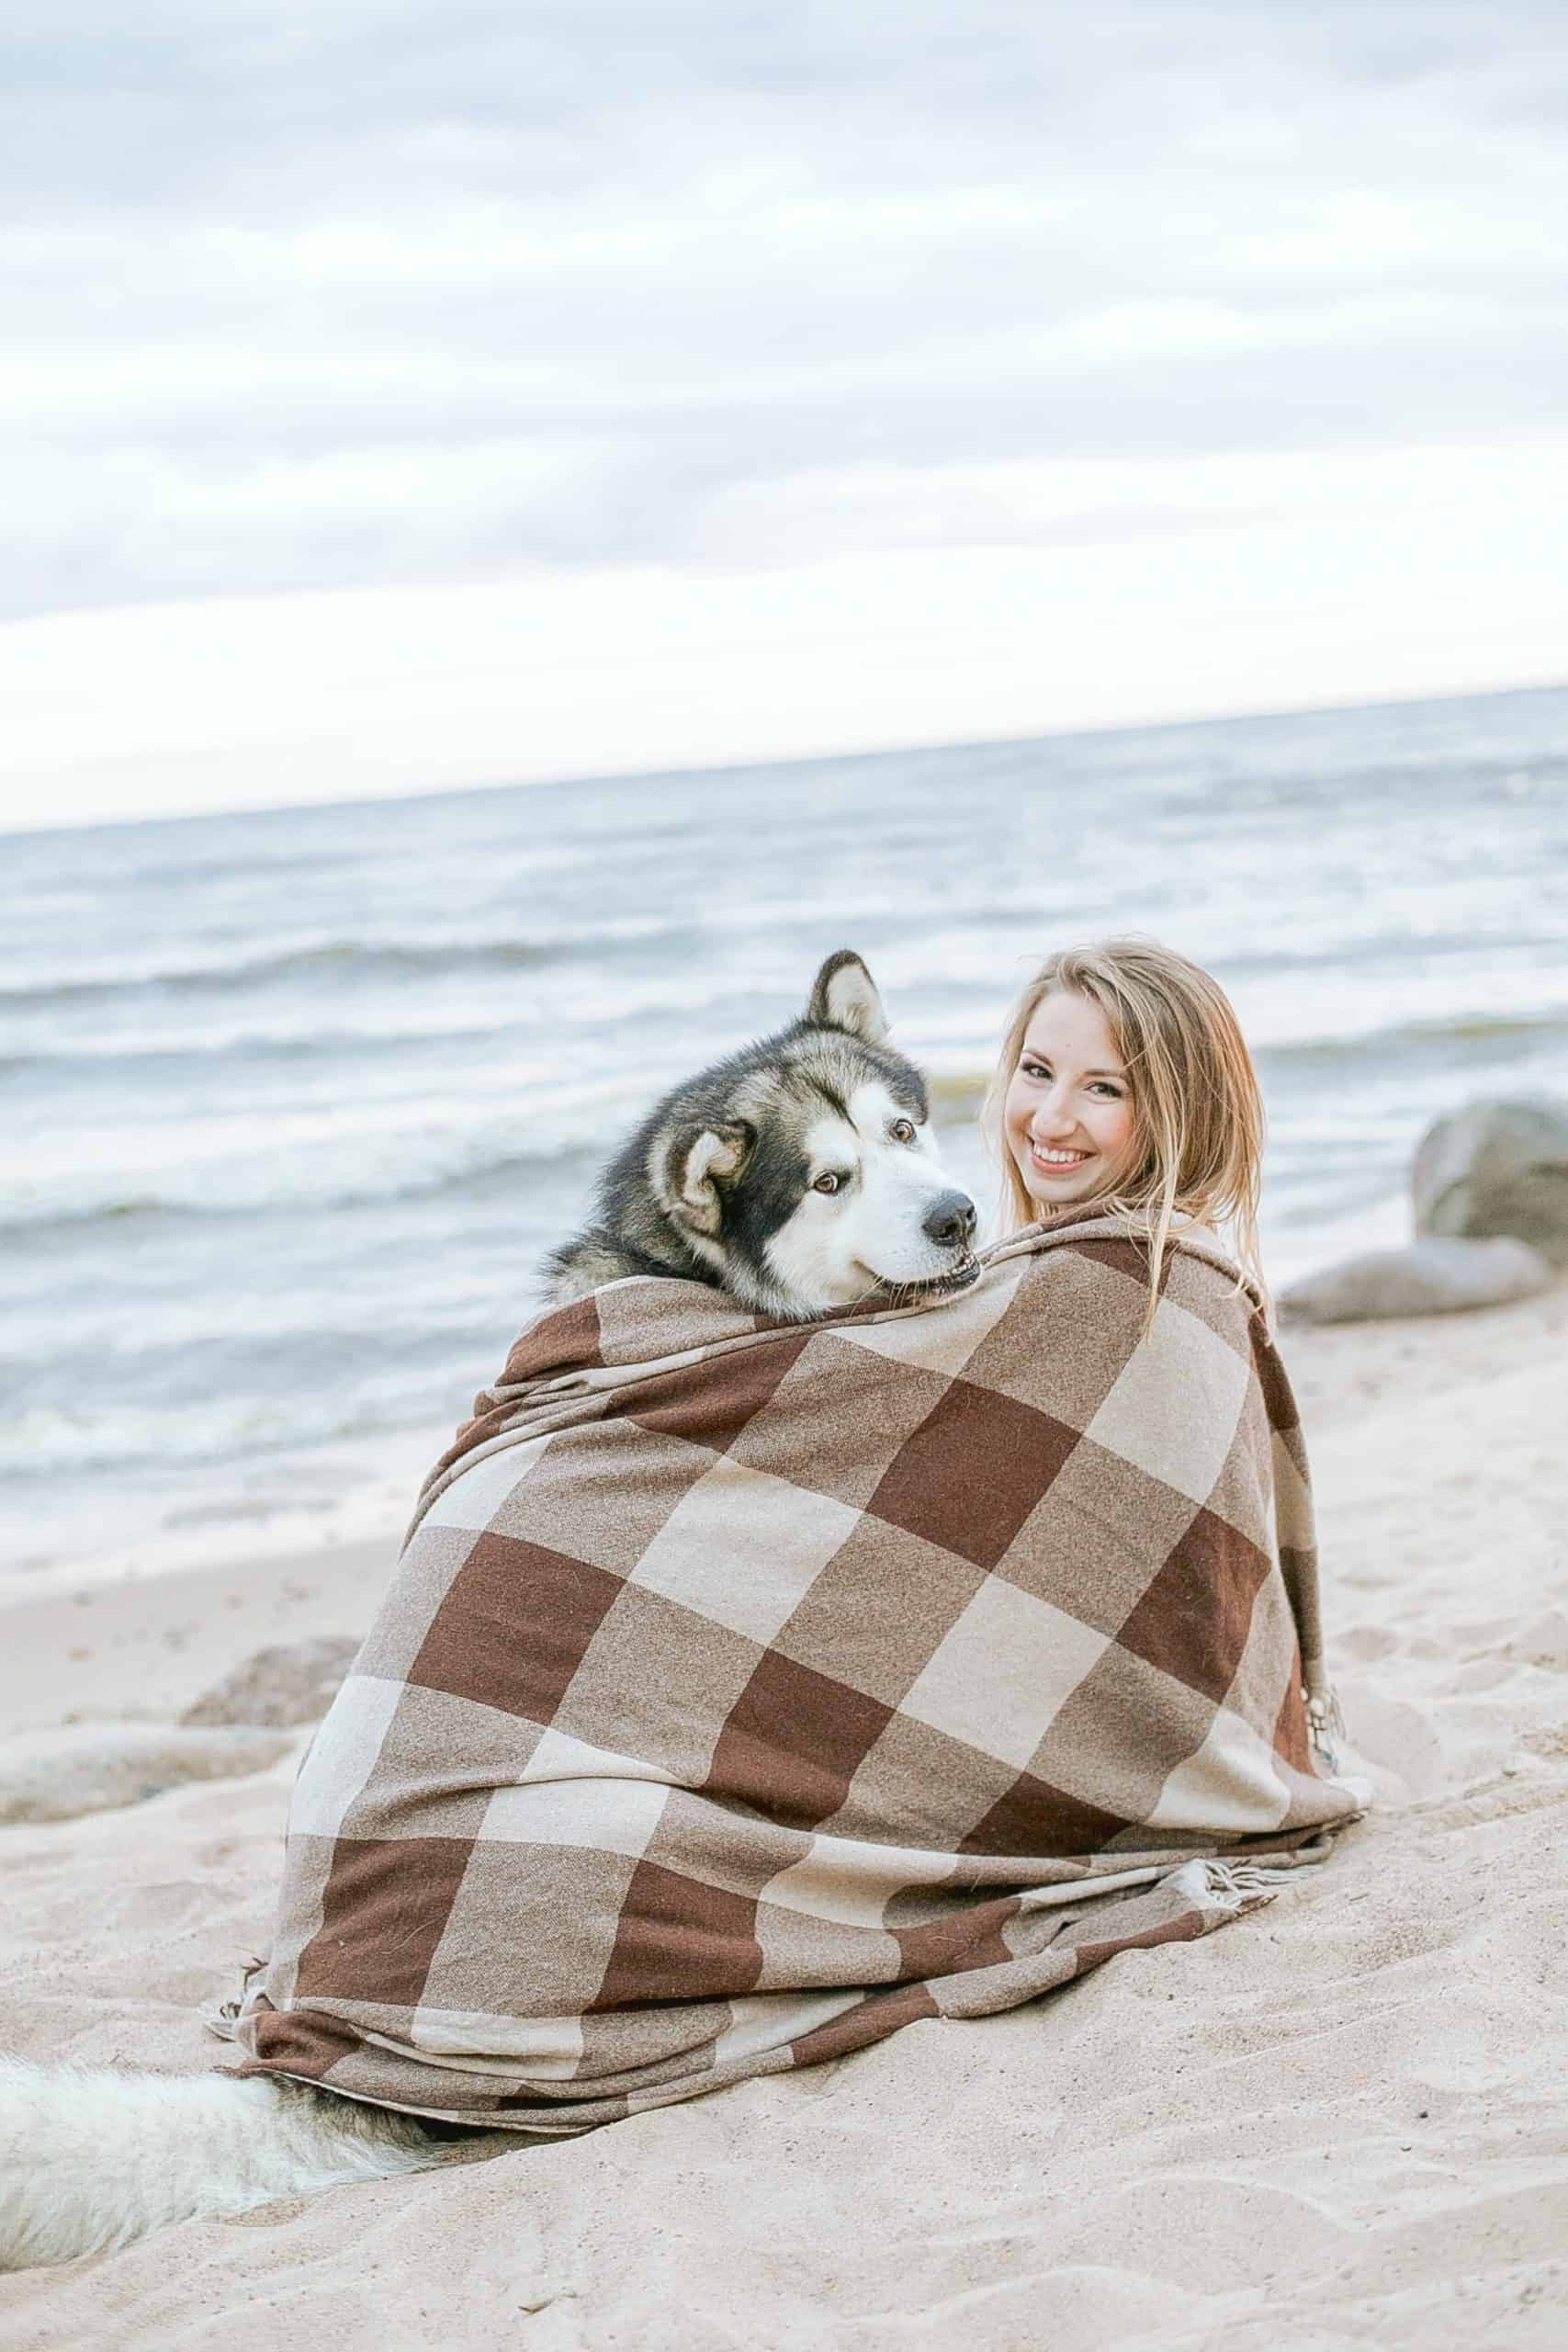 Why Should You Buy a Dog's Blanket?